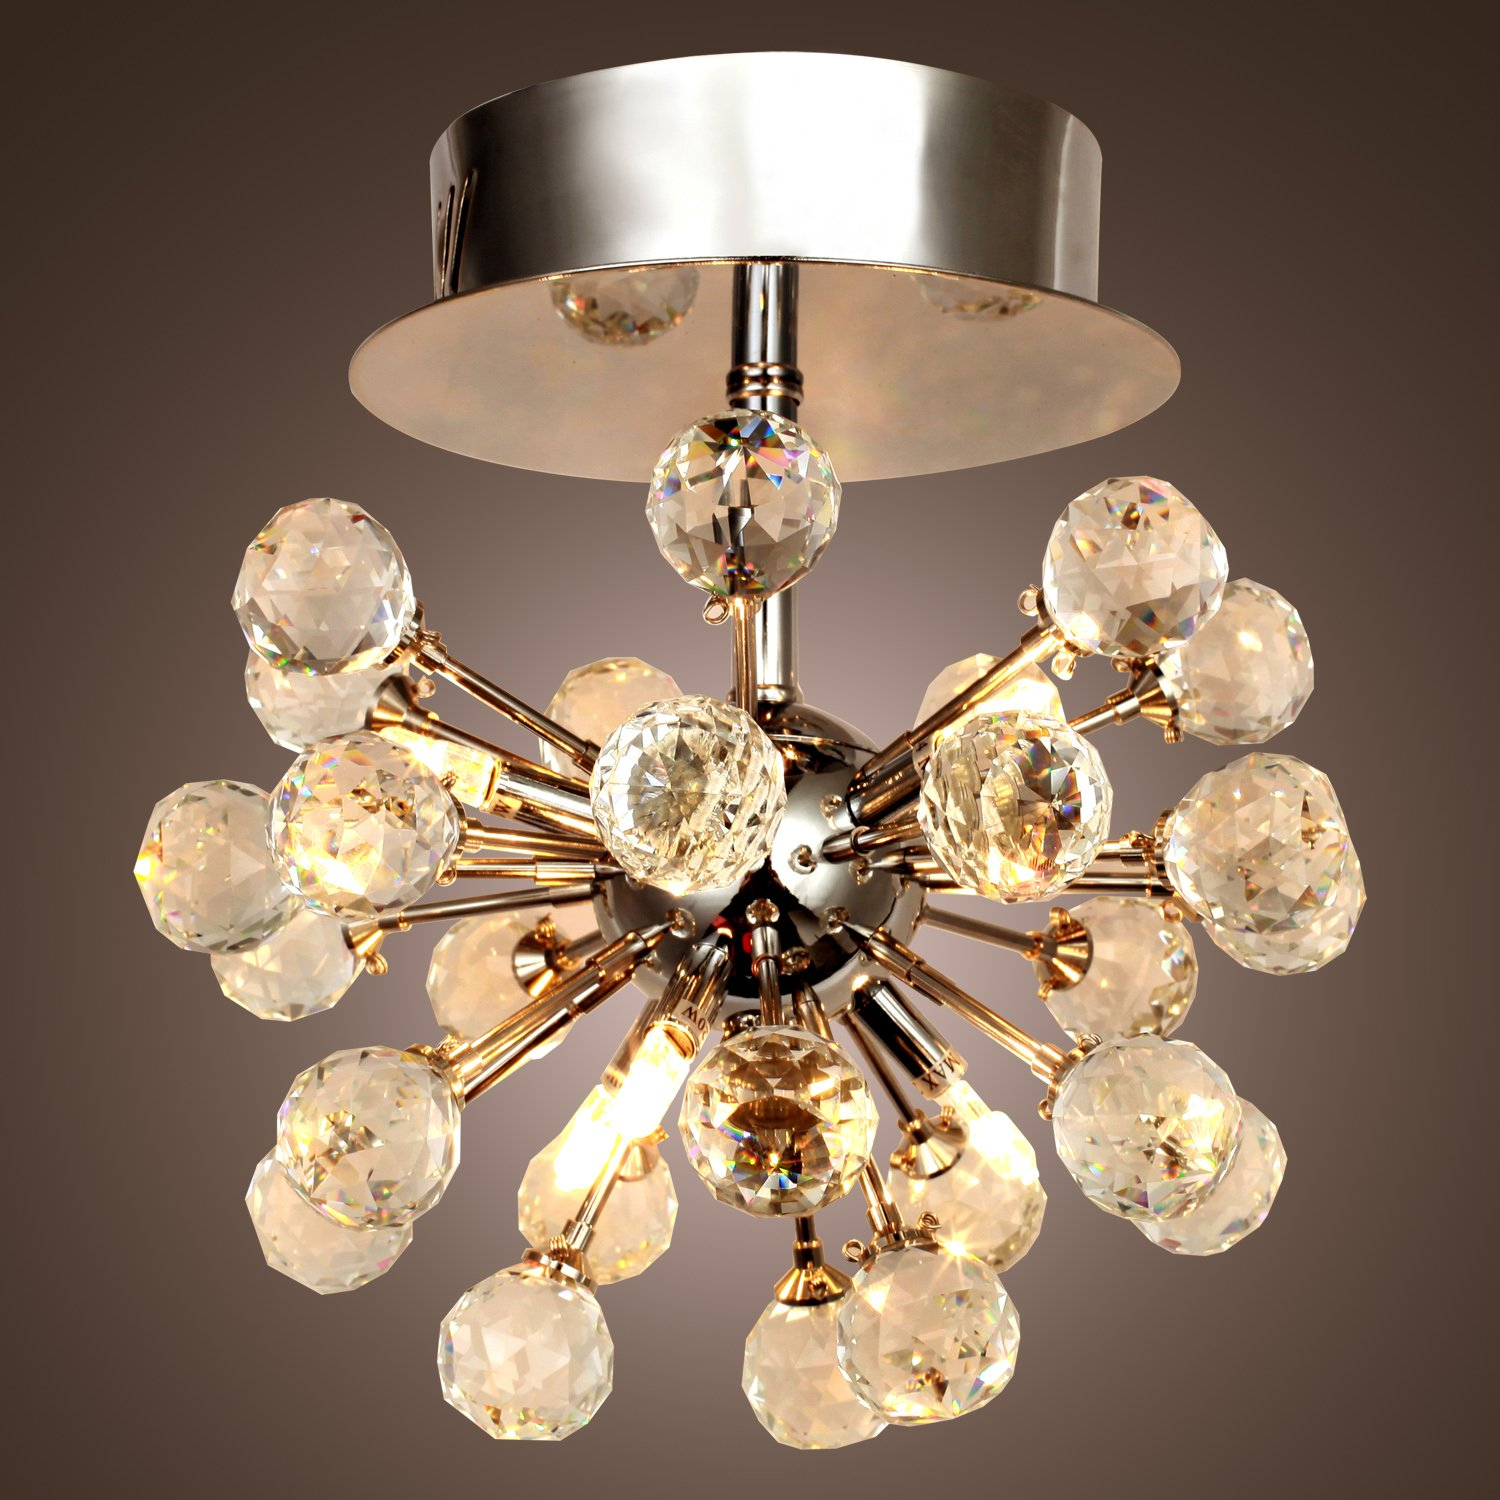 max 10w k9 crystal chandelier with 6 lights in globe shape mini style chandeliers modern ceiling light fixture for hallway bedroom